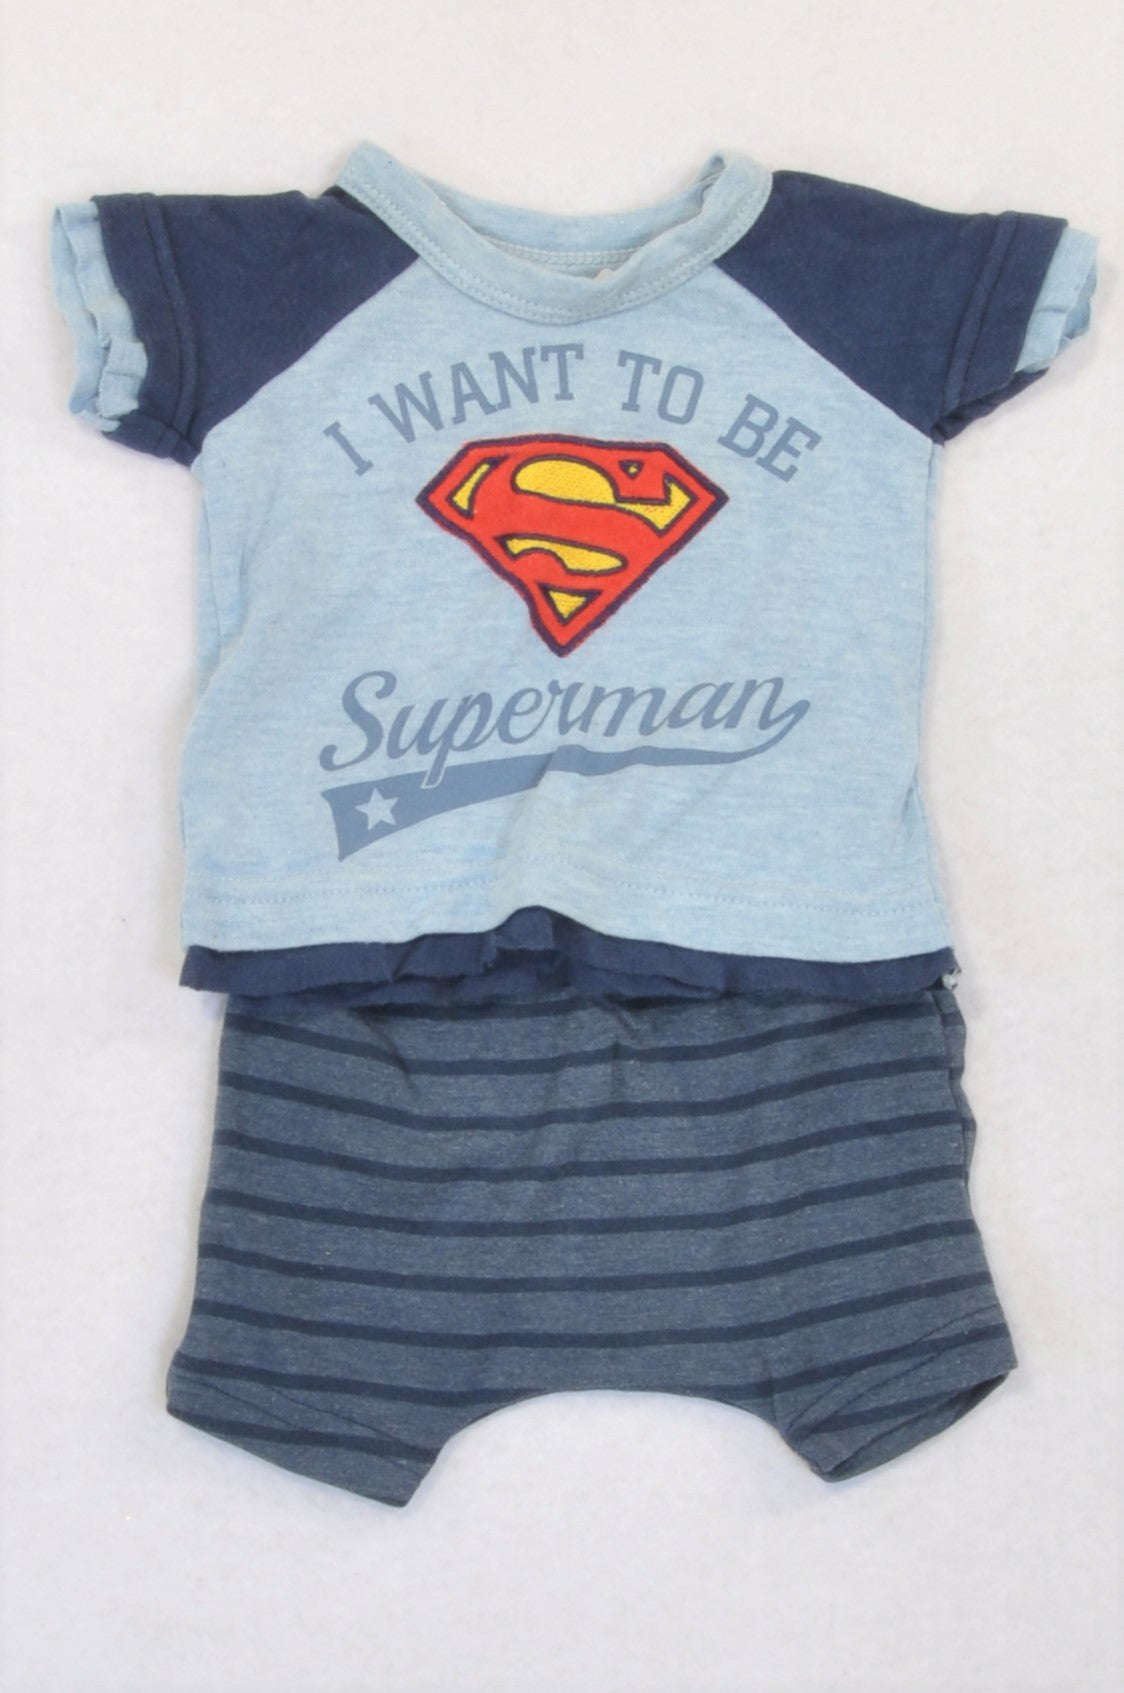 Woolworths Blue & Navy Superman T-Shirt & Shorts Outfit Boys N-B